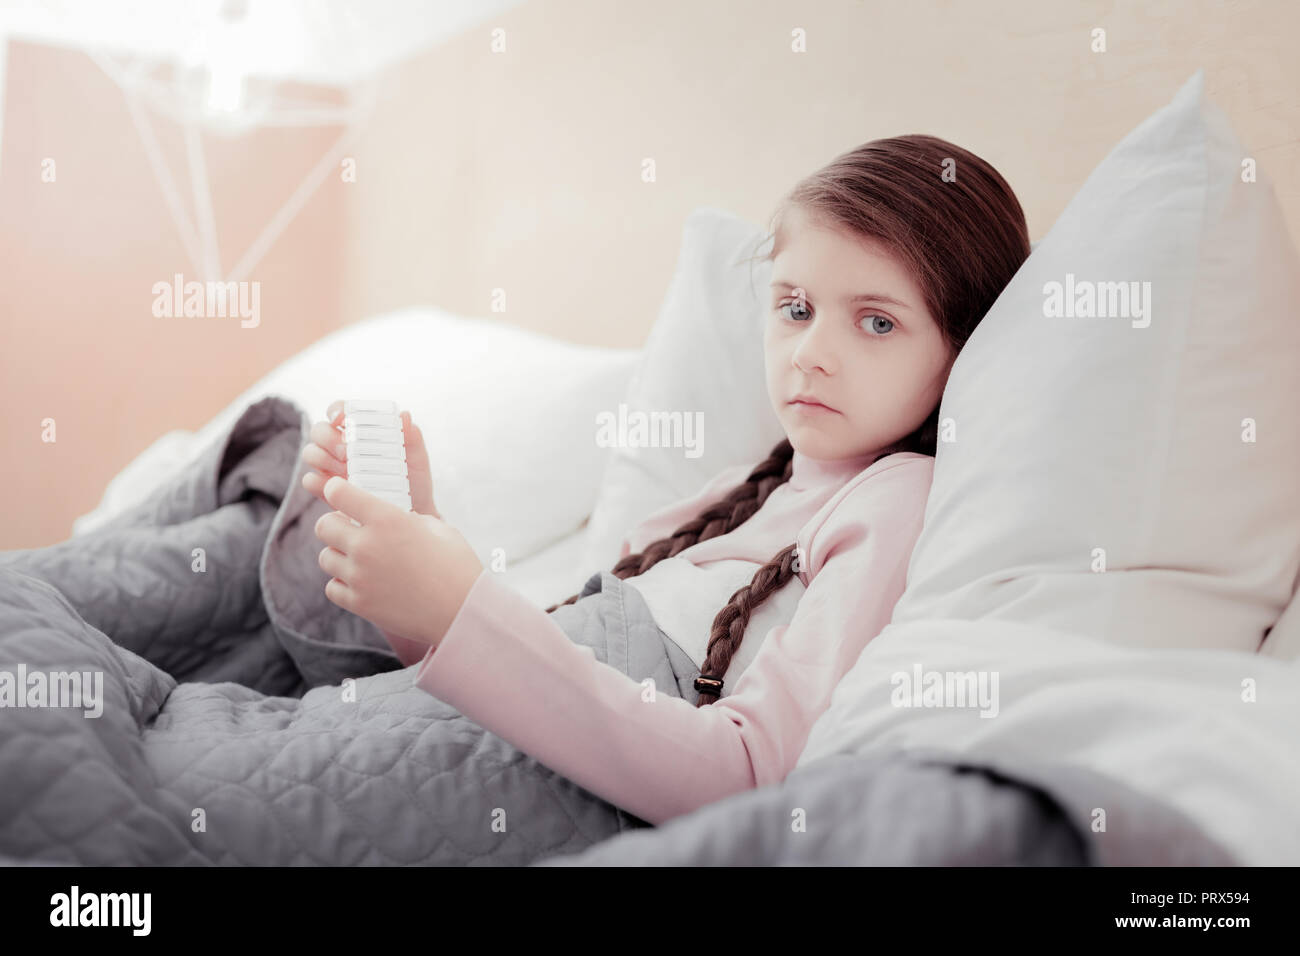 Close up of pale sick girl in bed - Stock Image